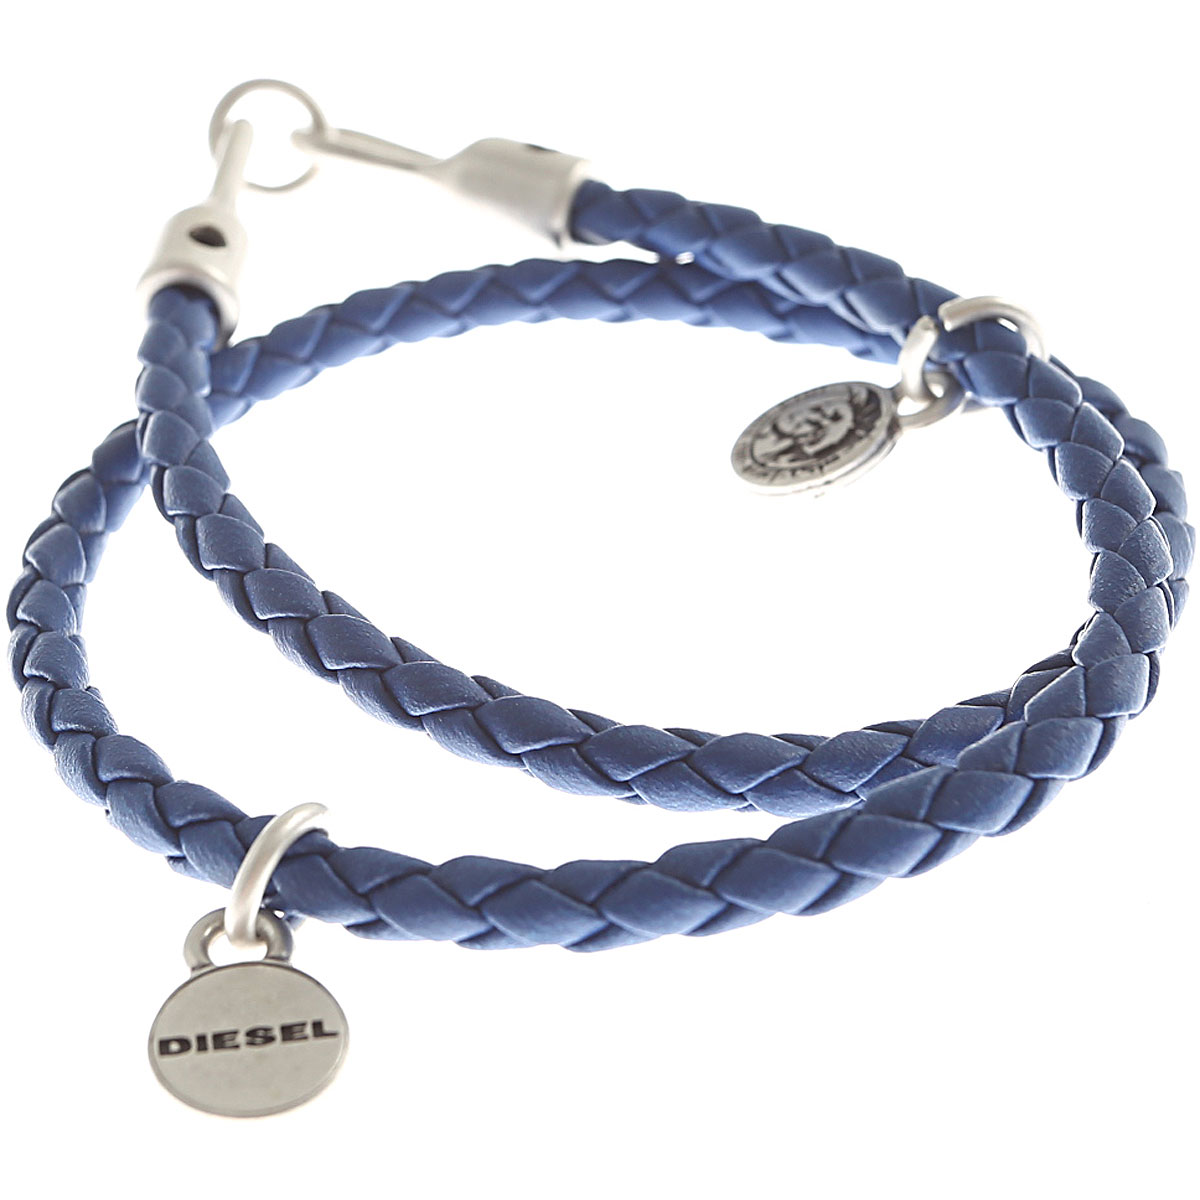 Diesel Bracelet for Men On Sale in Outlet, Bluette, polyurethane, 2019